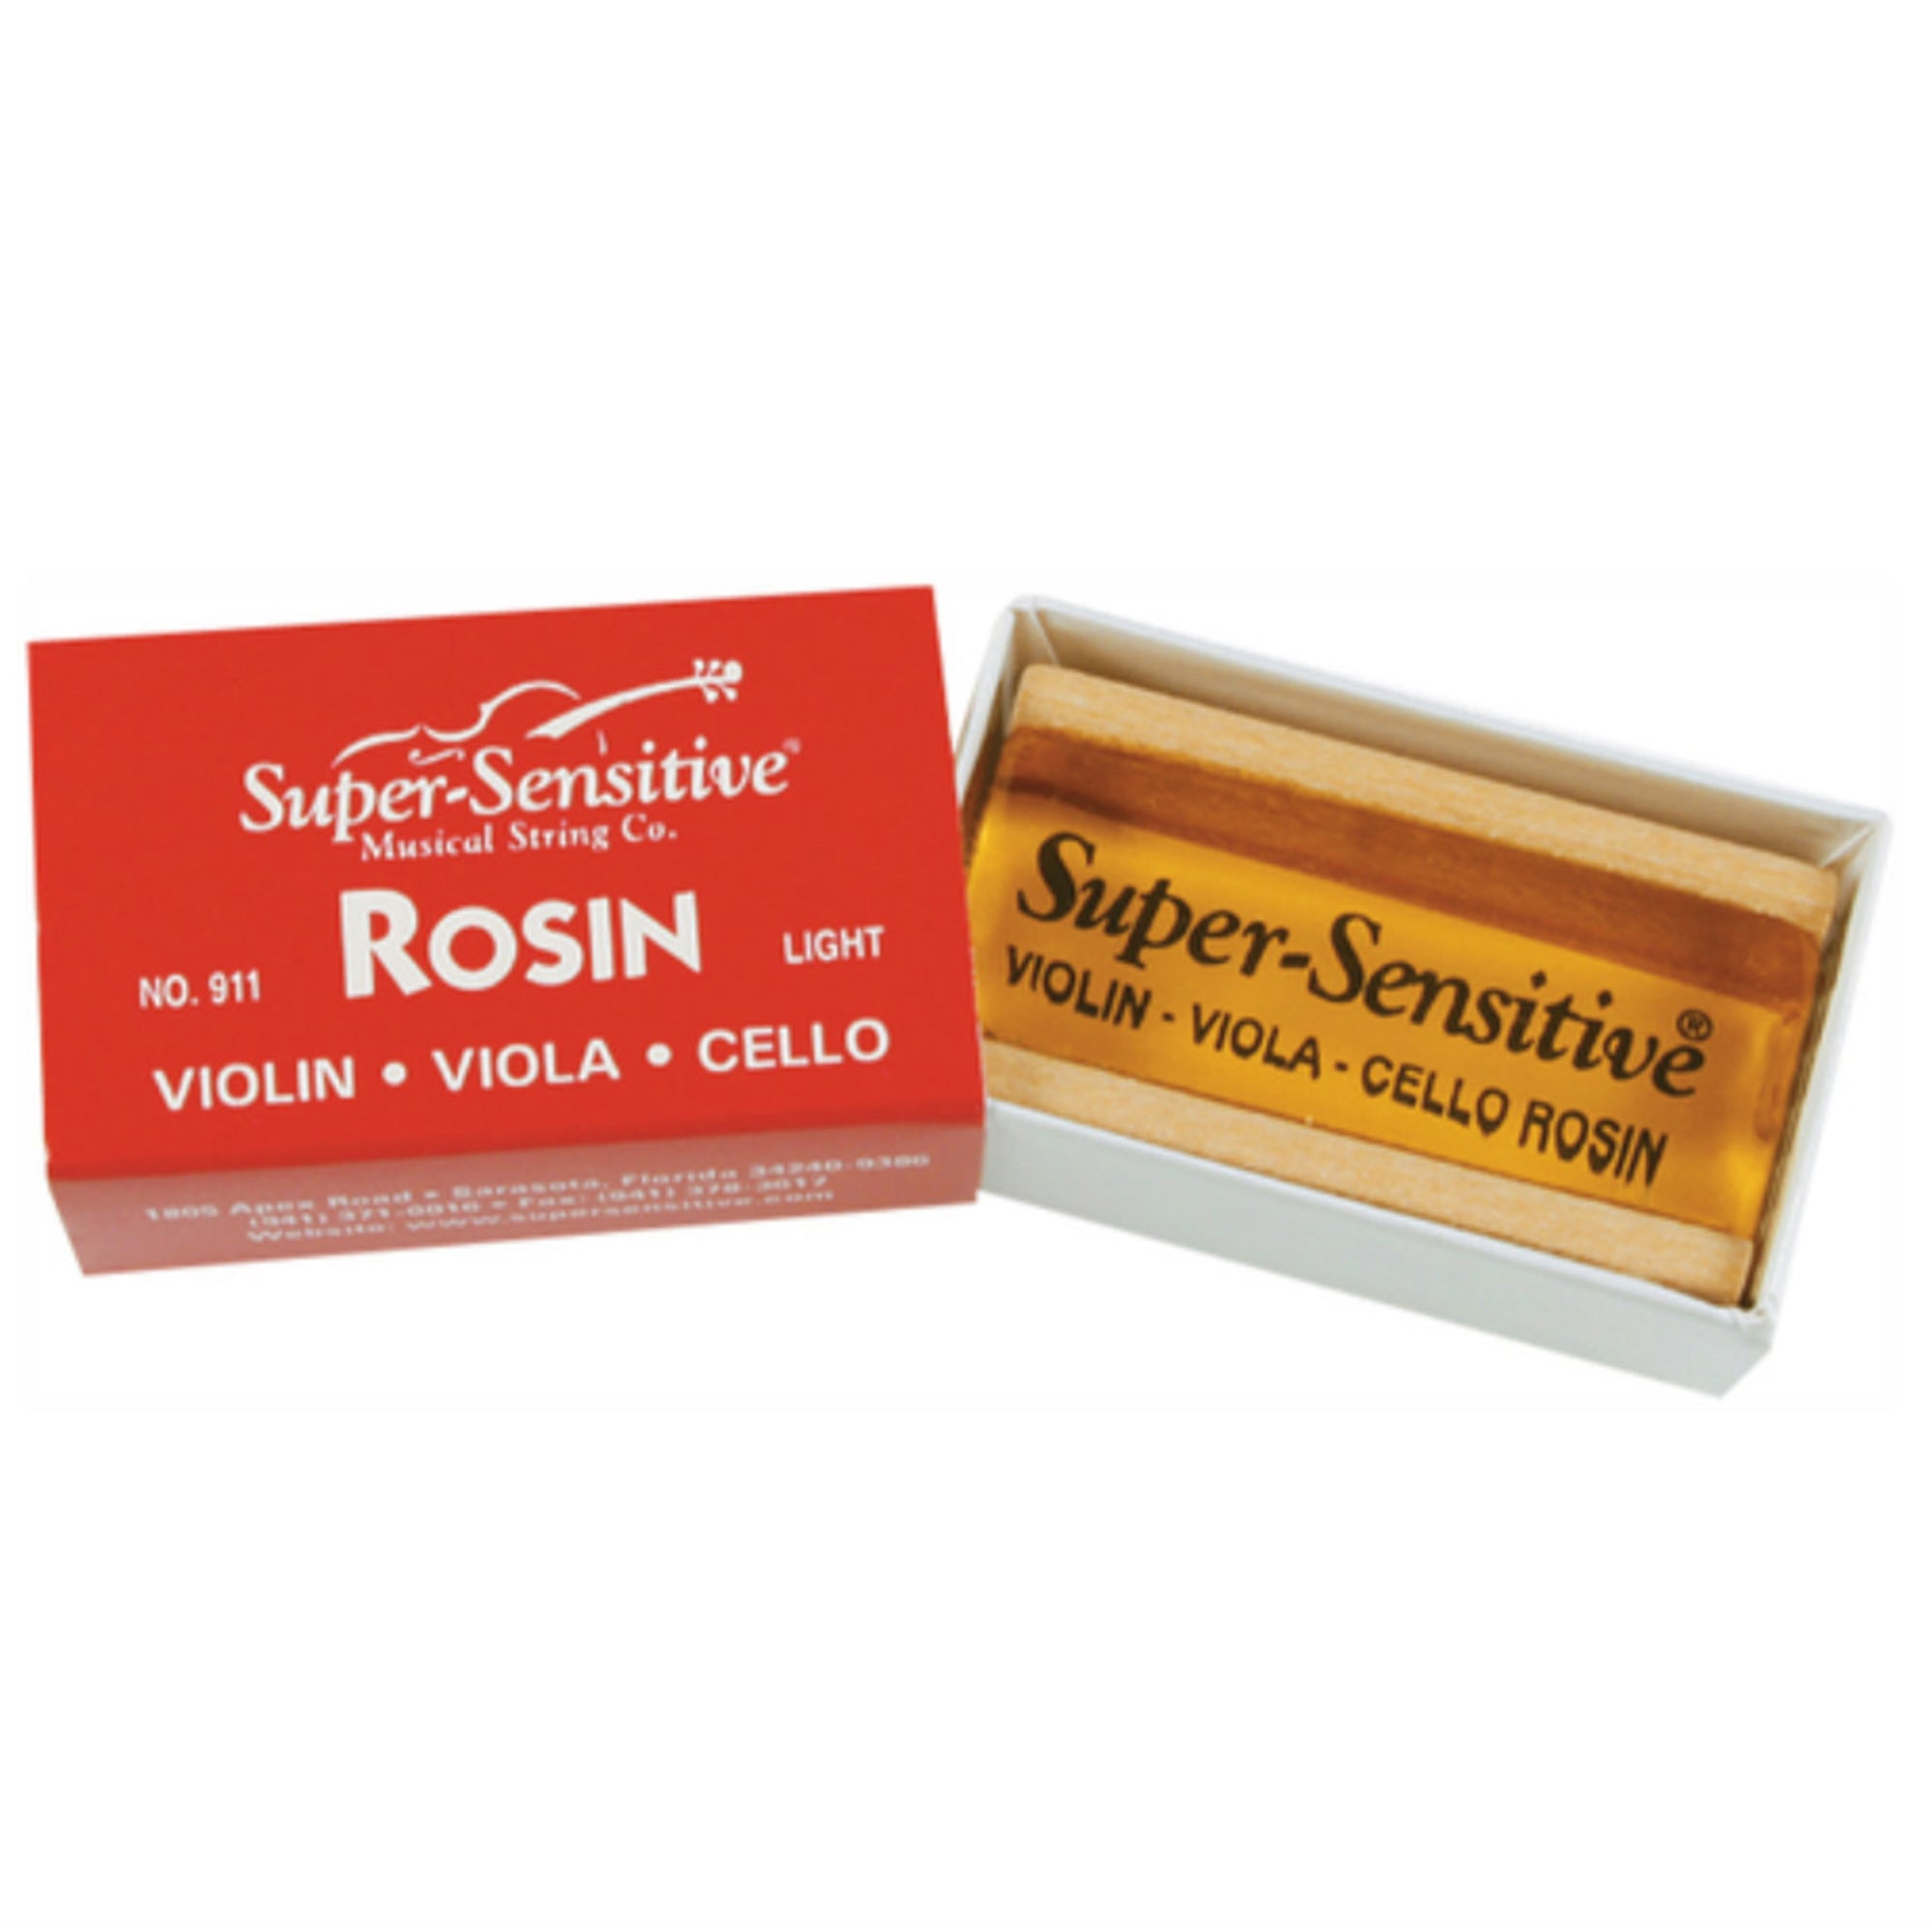 Super Sensitive Light Rosin